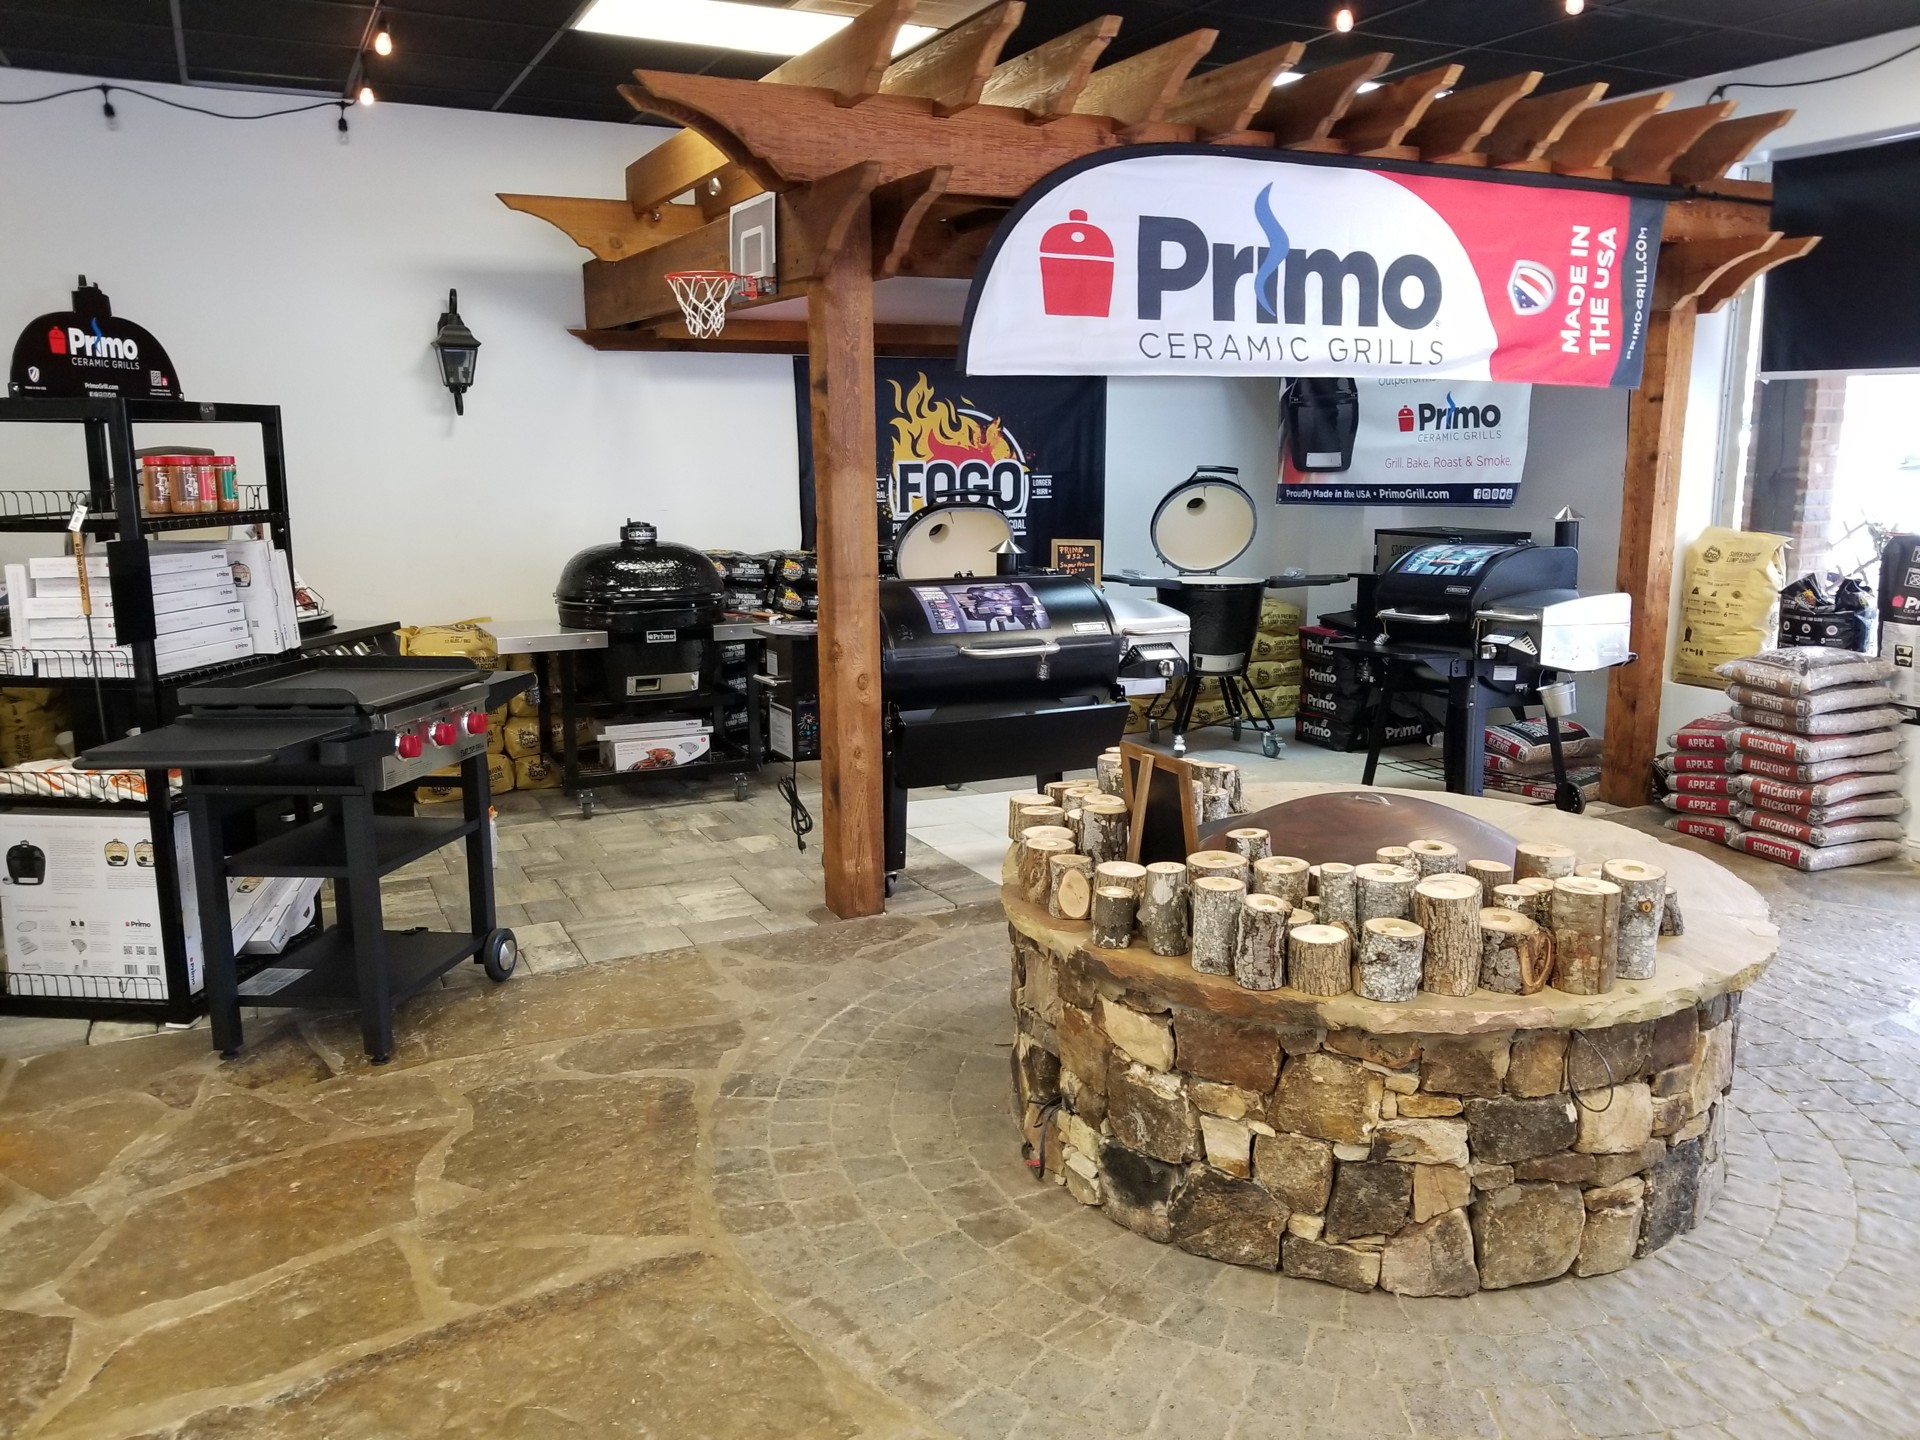 Primo grill at our show room